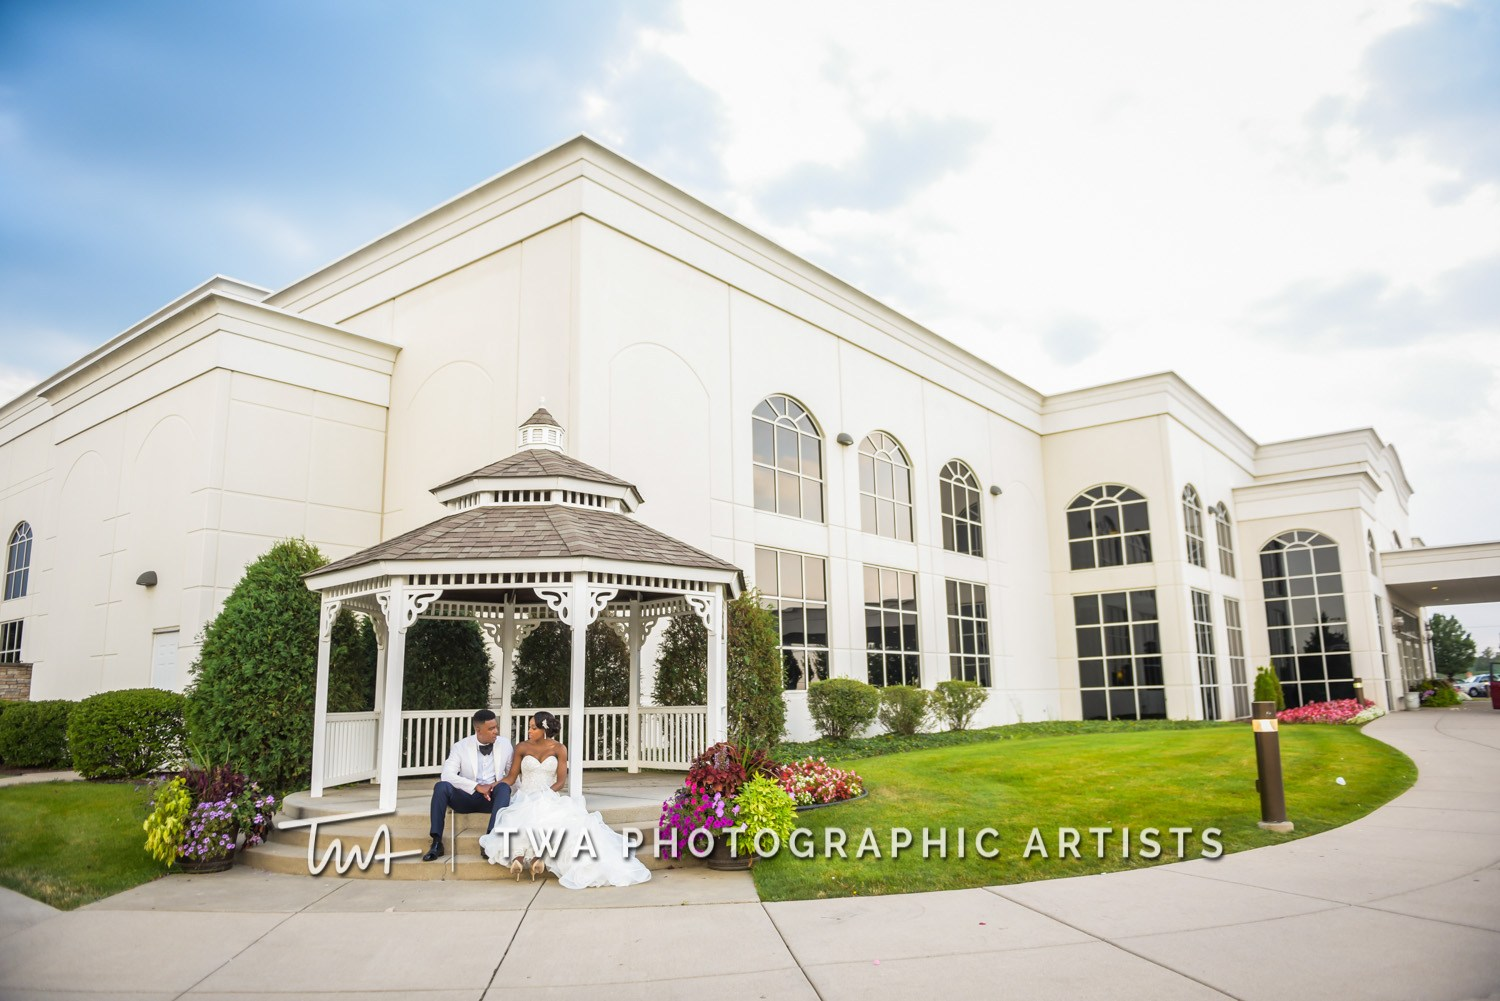 Chicago-Wedding-Photographer-TWA-Photographic-Artists-DiNolfo_s-Banquets_Smith_Stapleton_ZZ_CL-089-0547